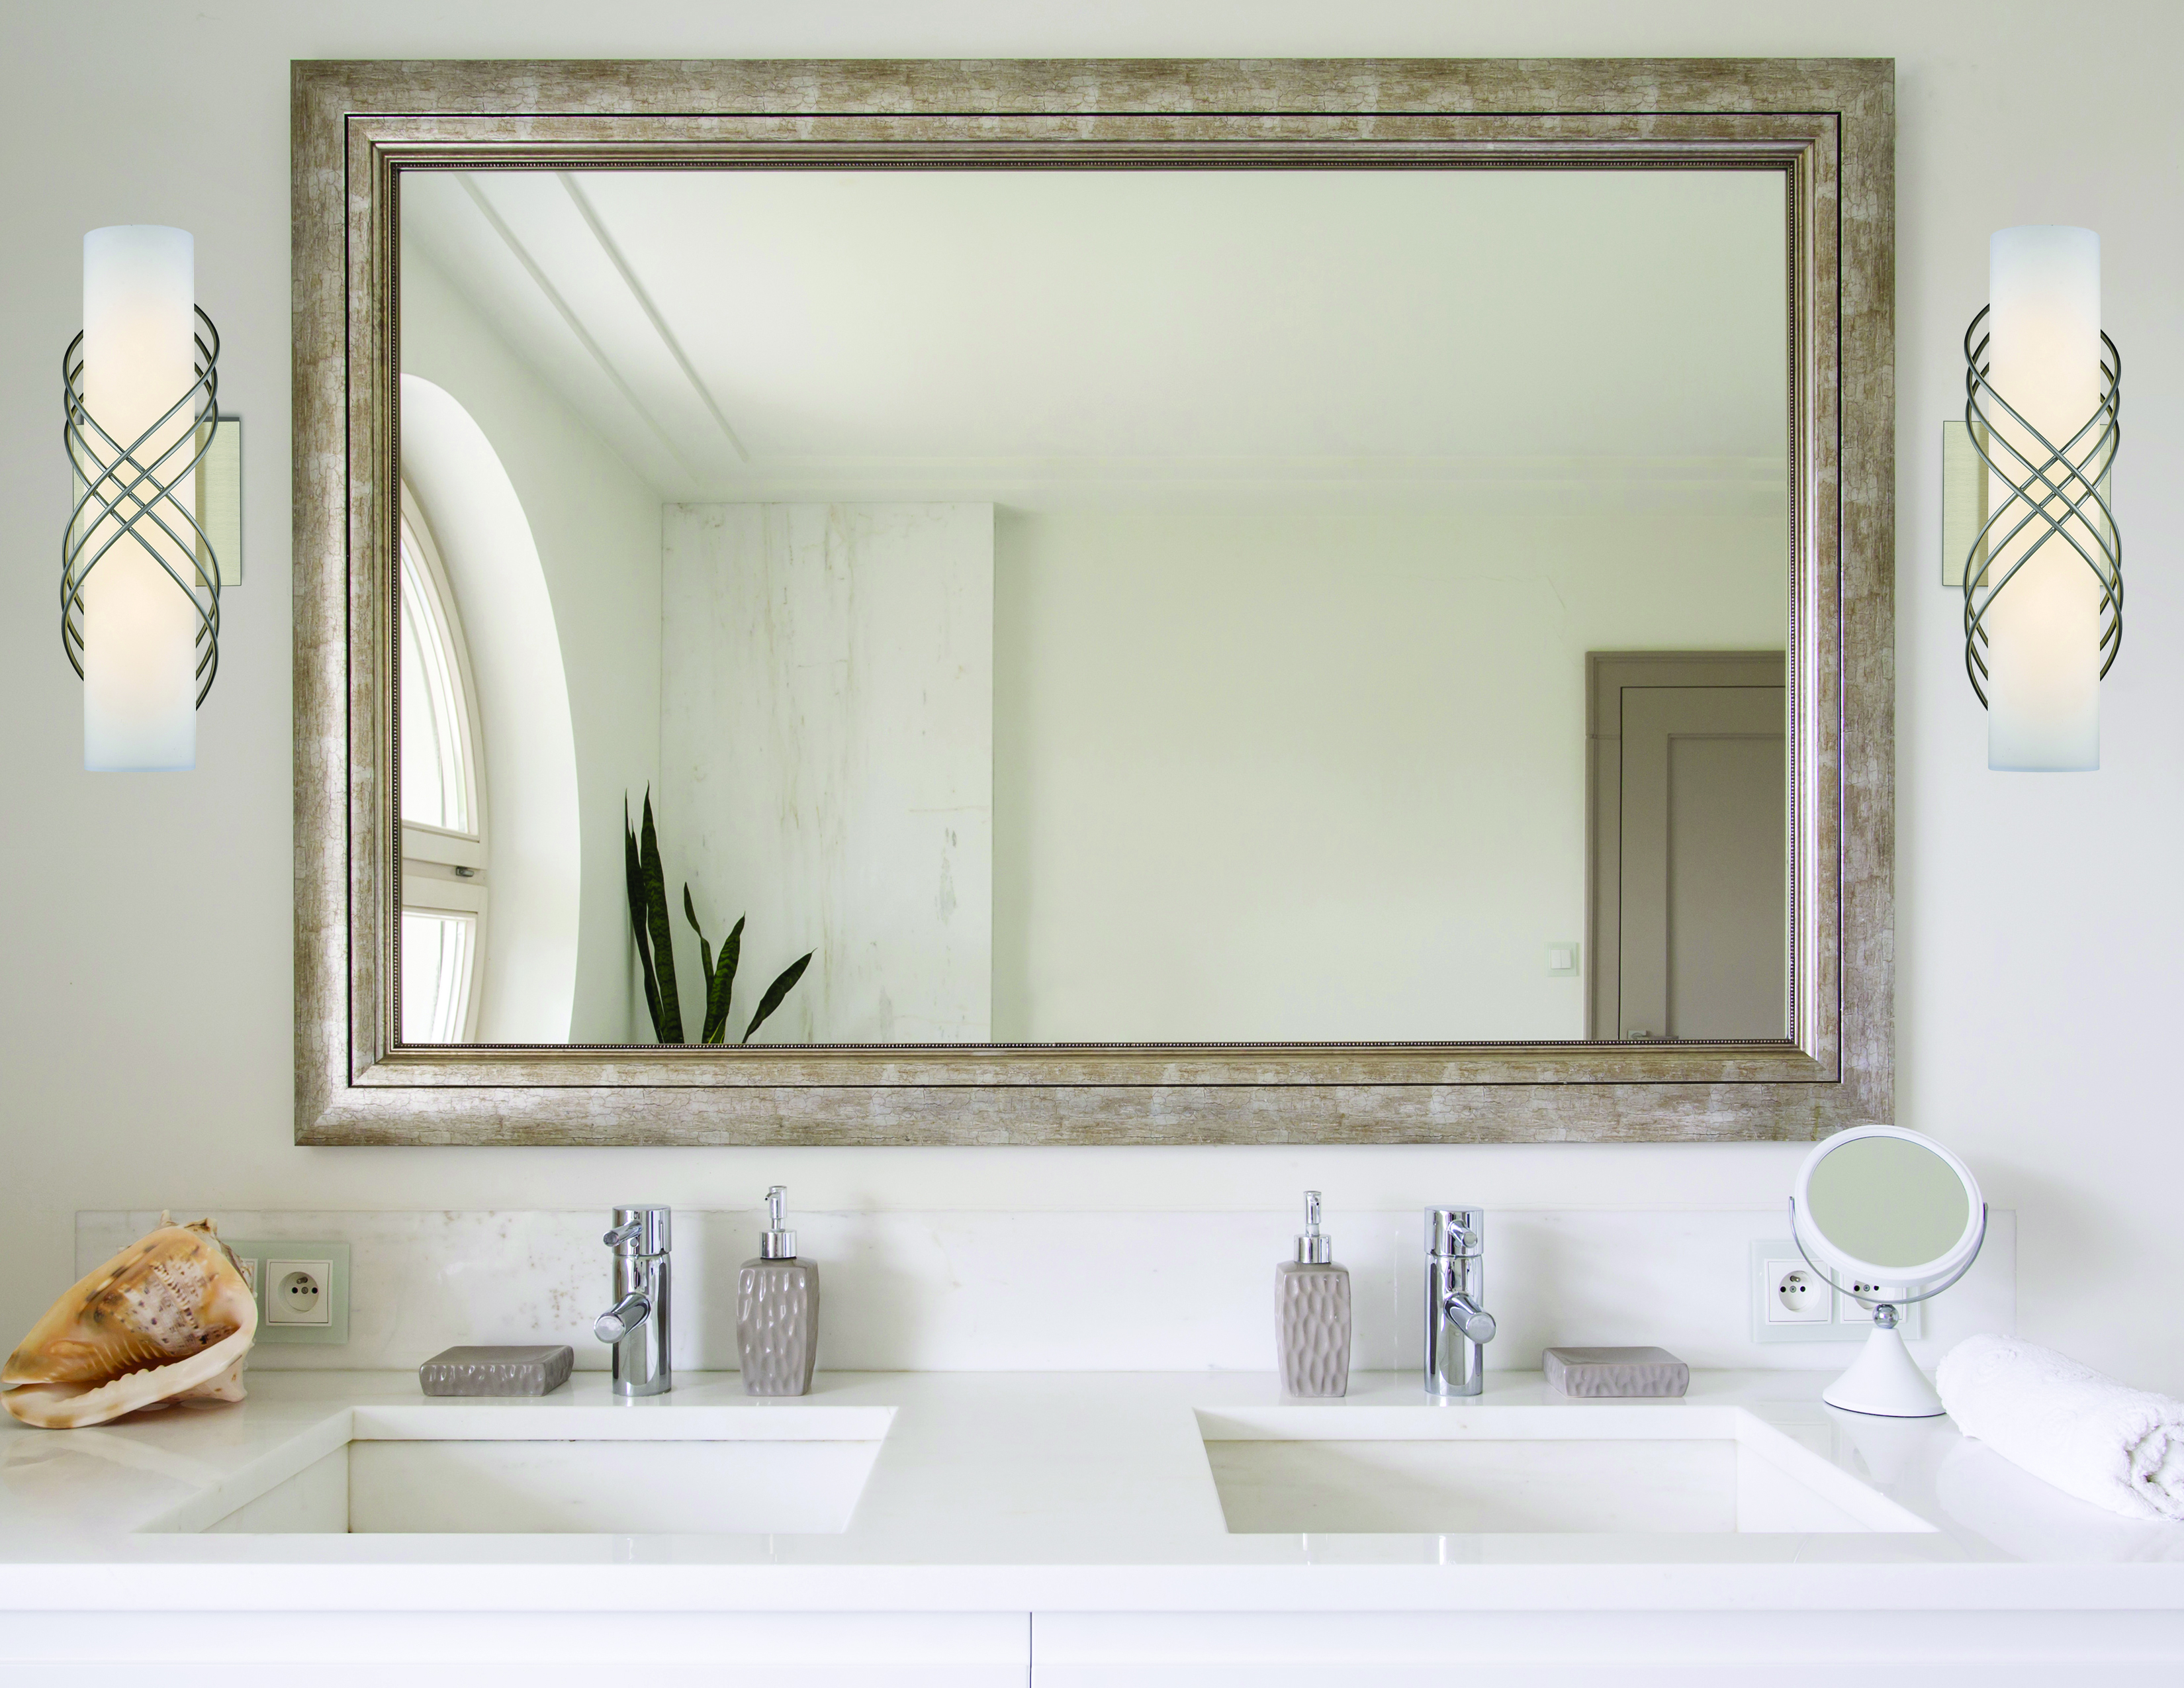 7 Bathroom Lighting Tips From The Lighting Doctor in size 3300 X 2550